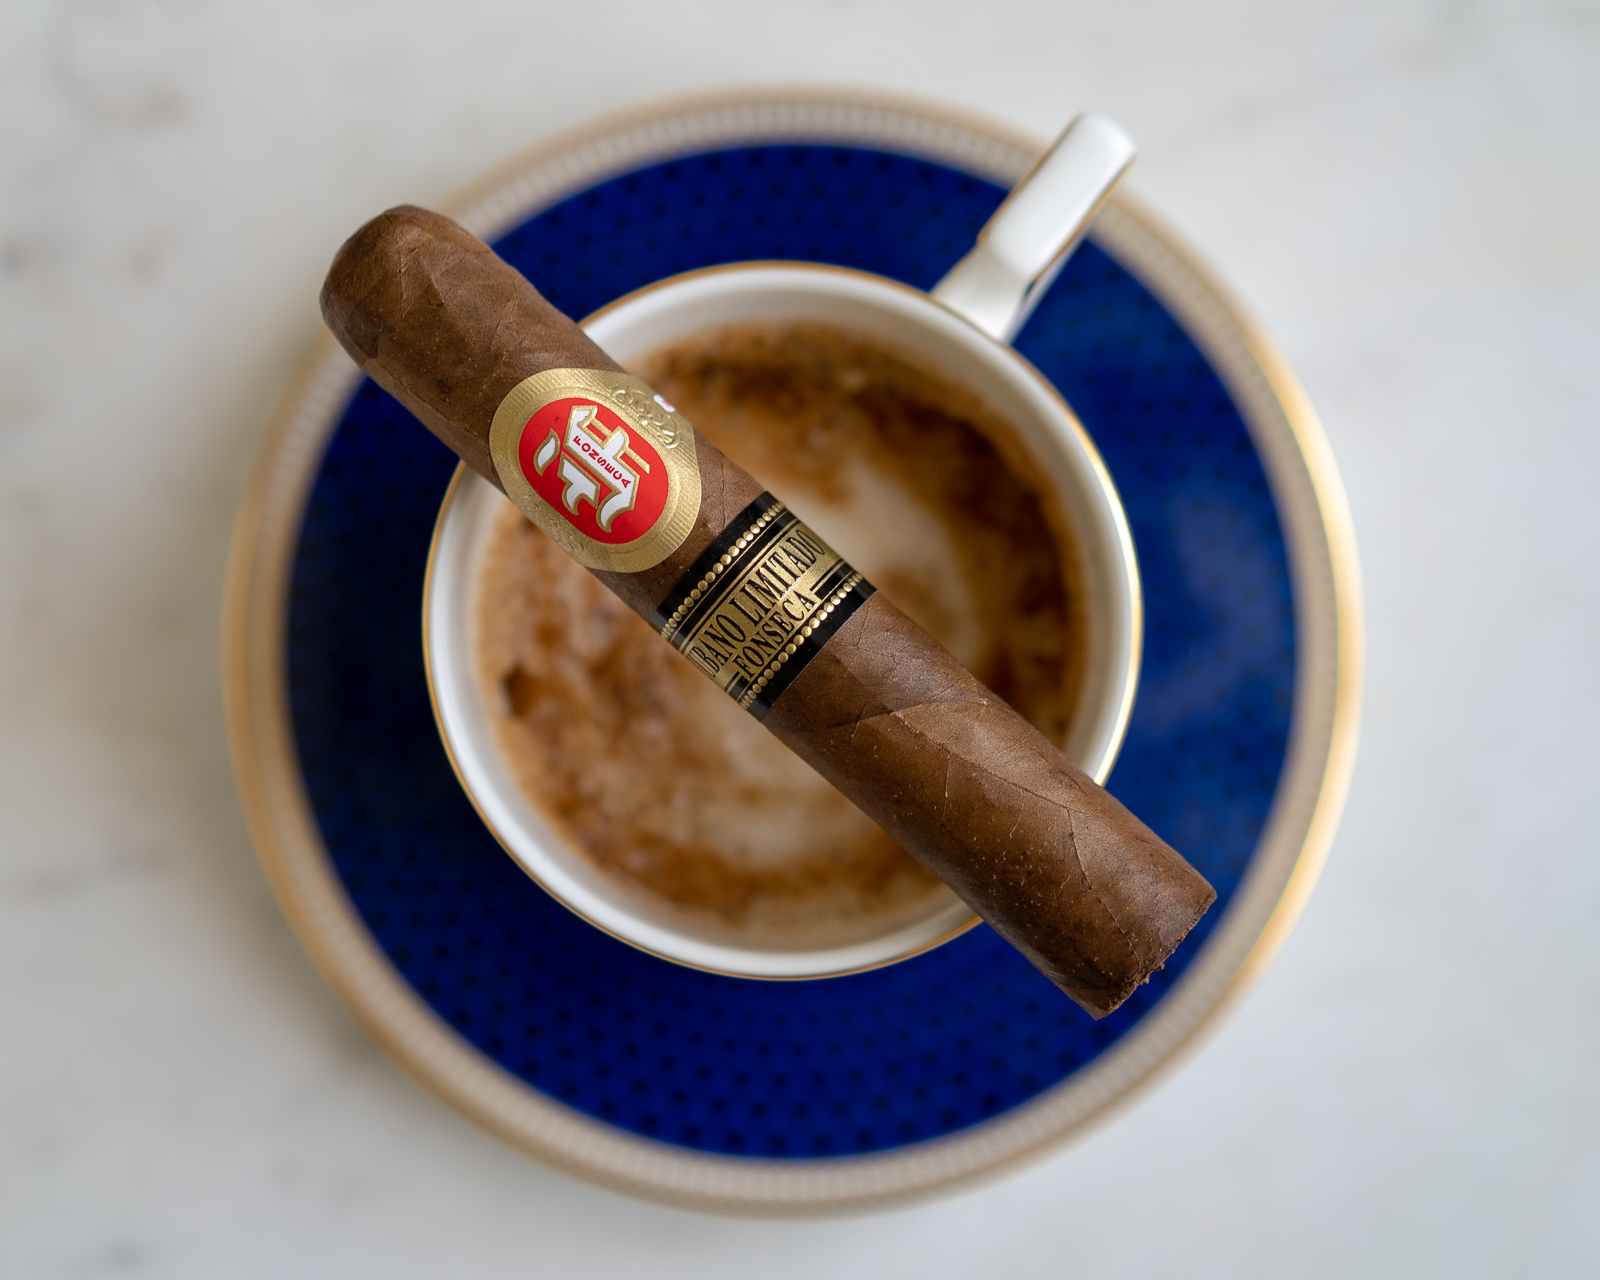 Fonseca Cubano Limitada review (1)